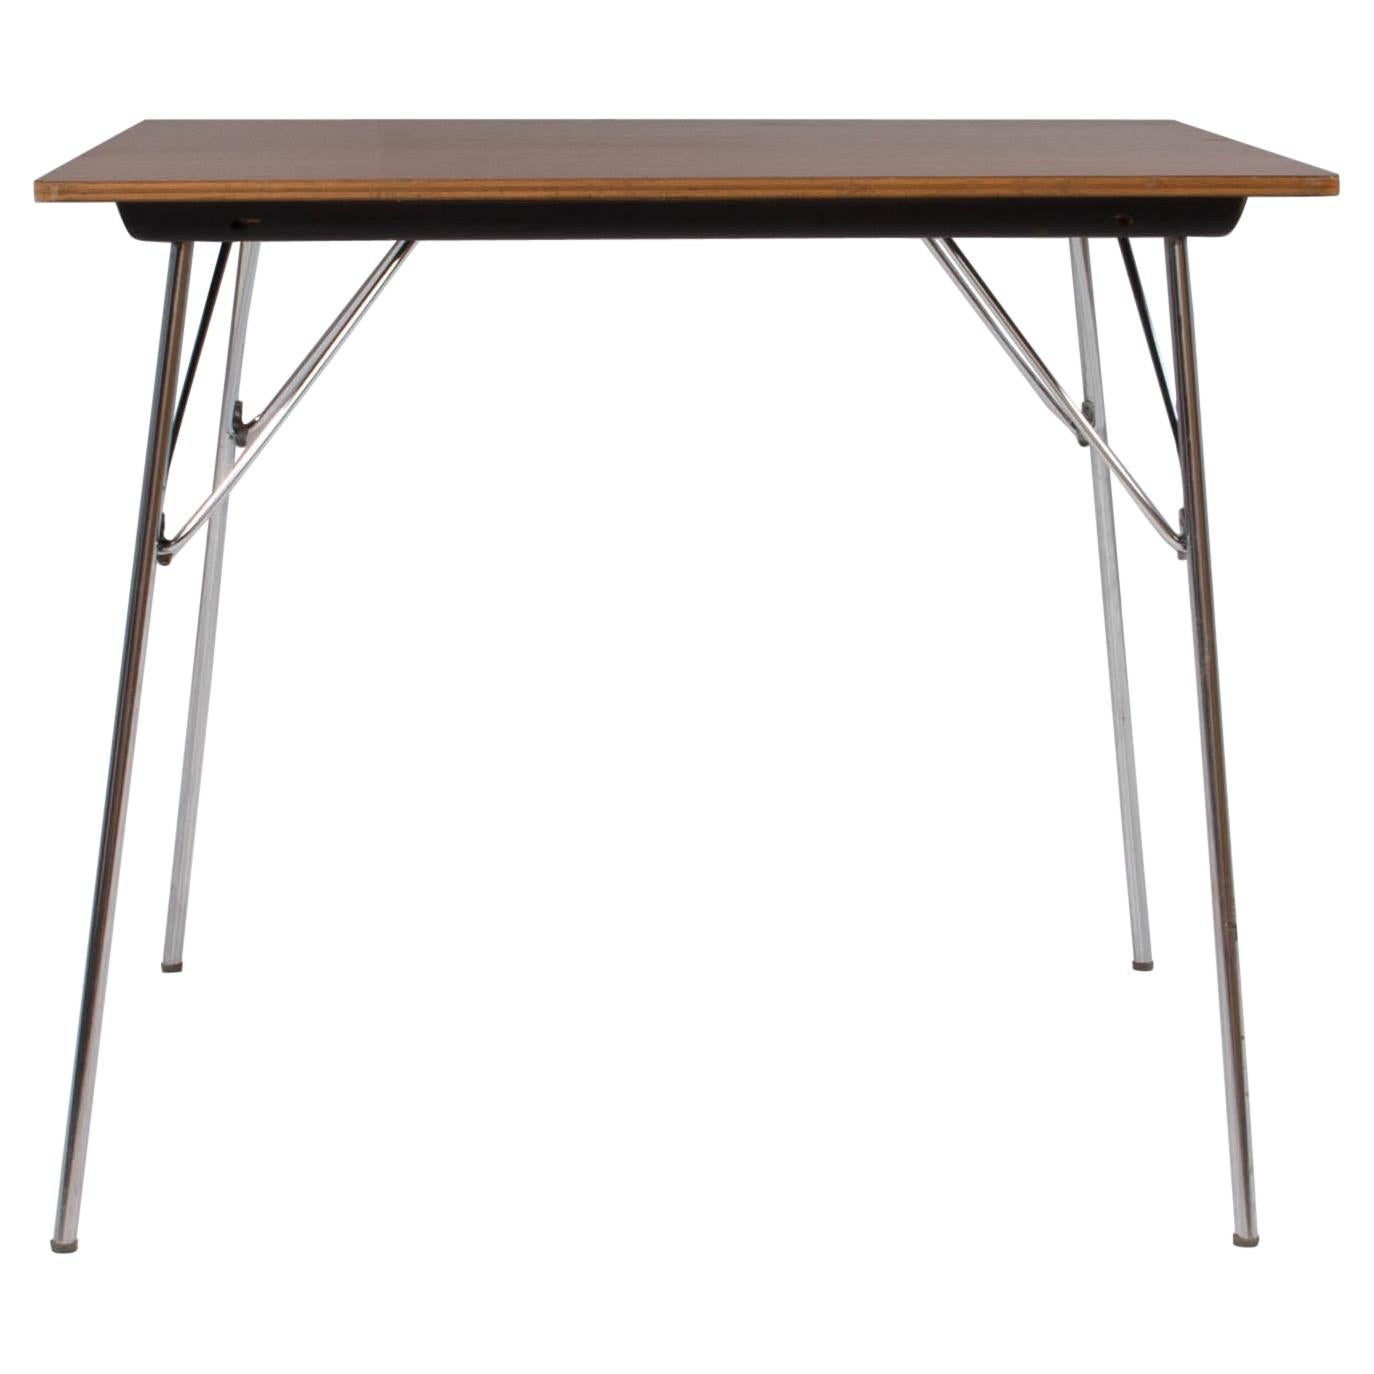 Charles & Ray Eames for Herman Miller DTM-2 Dining Table, 1950s